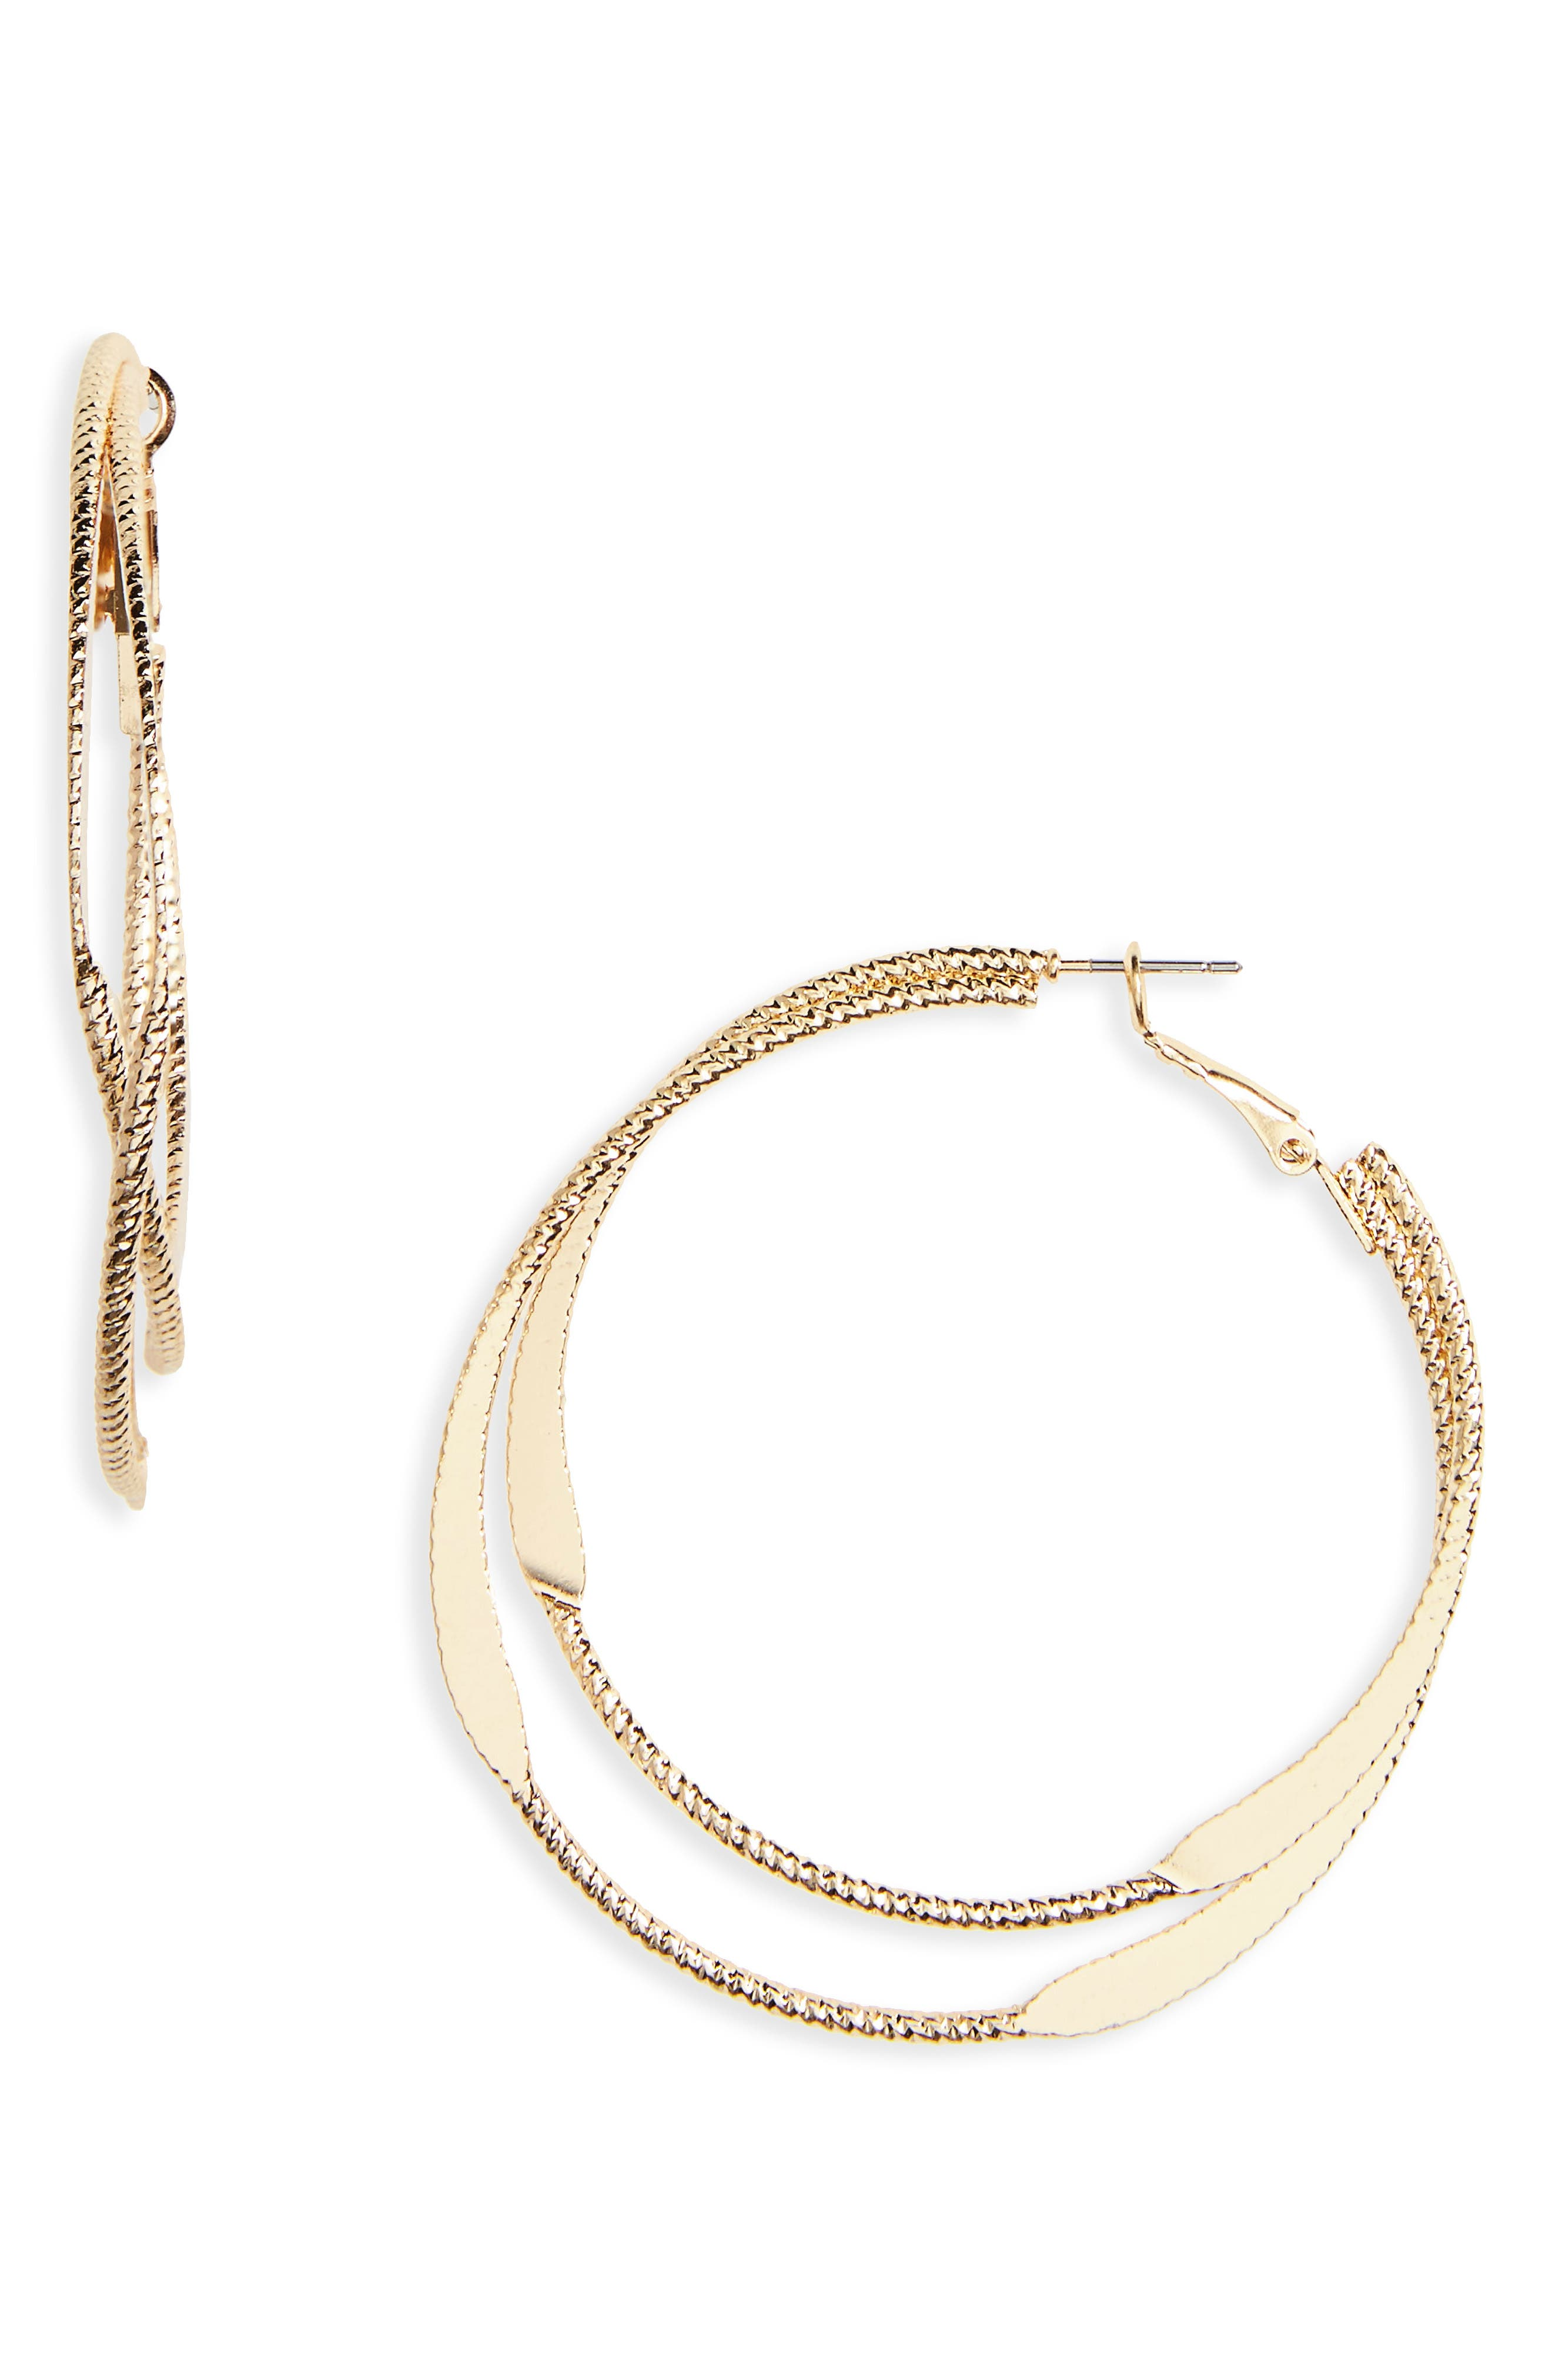 Layered Metal Hoop Earrings,                             Main thumbnail 1, color,                             Gold